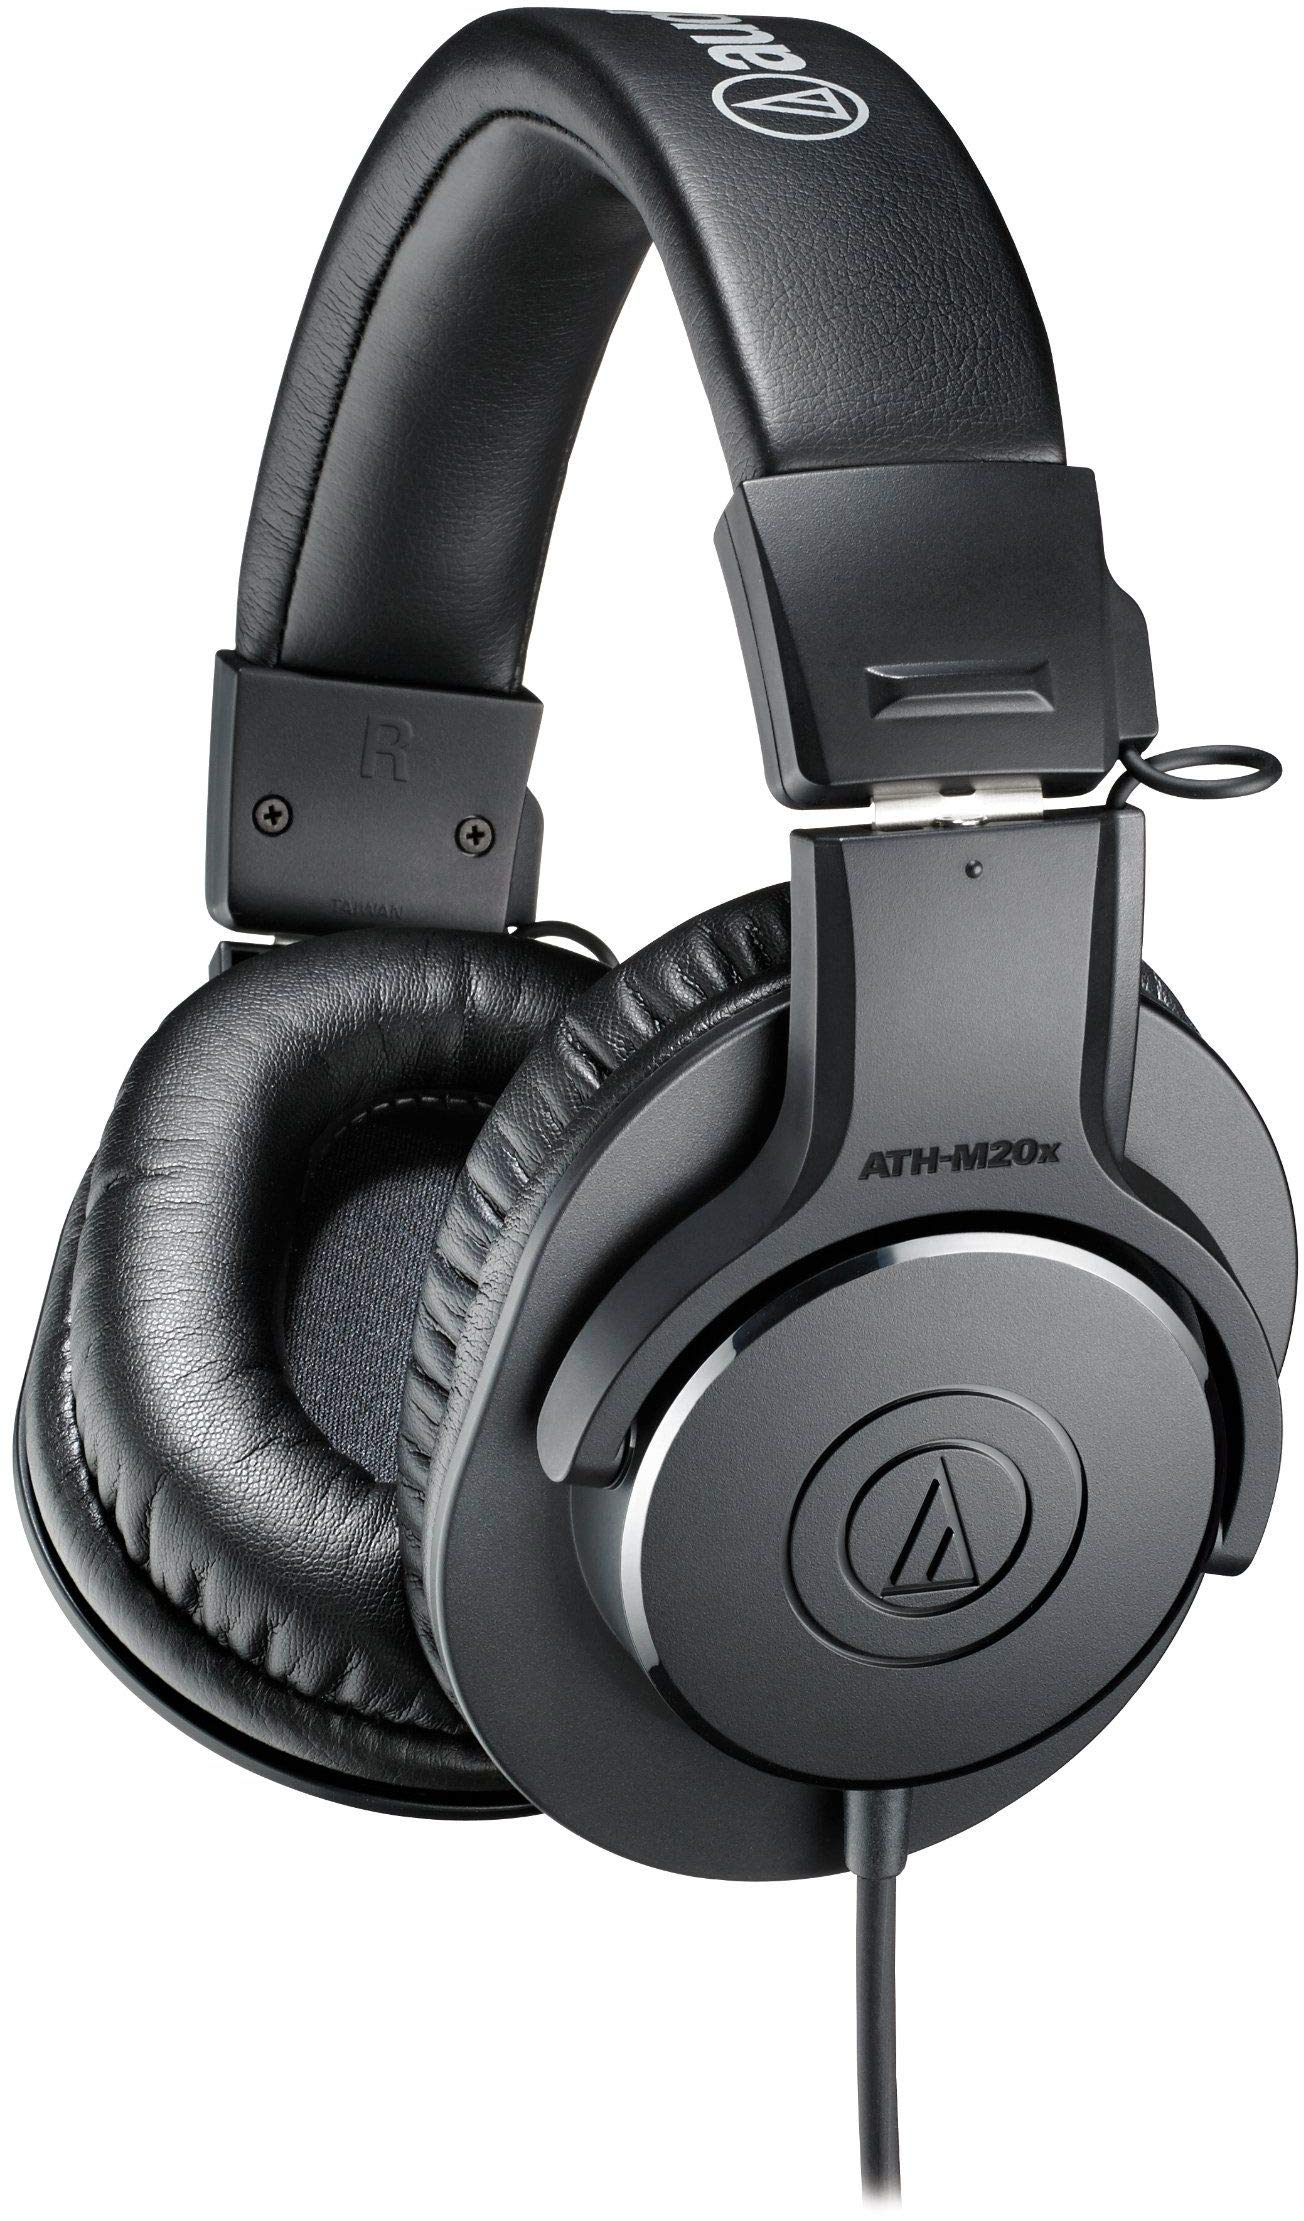 Audio-Technica ATH-M20x Over-Ear Professional Studio Monitor Headphones (Black) product image